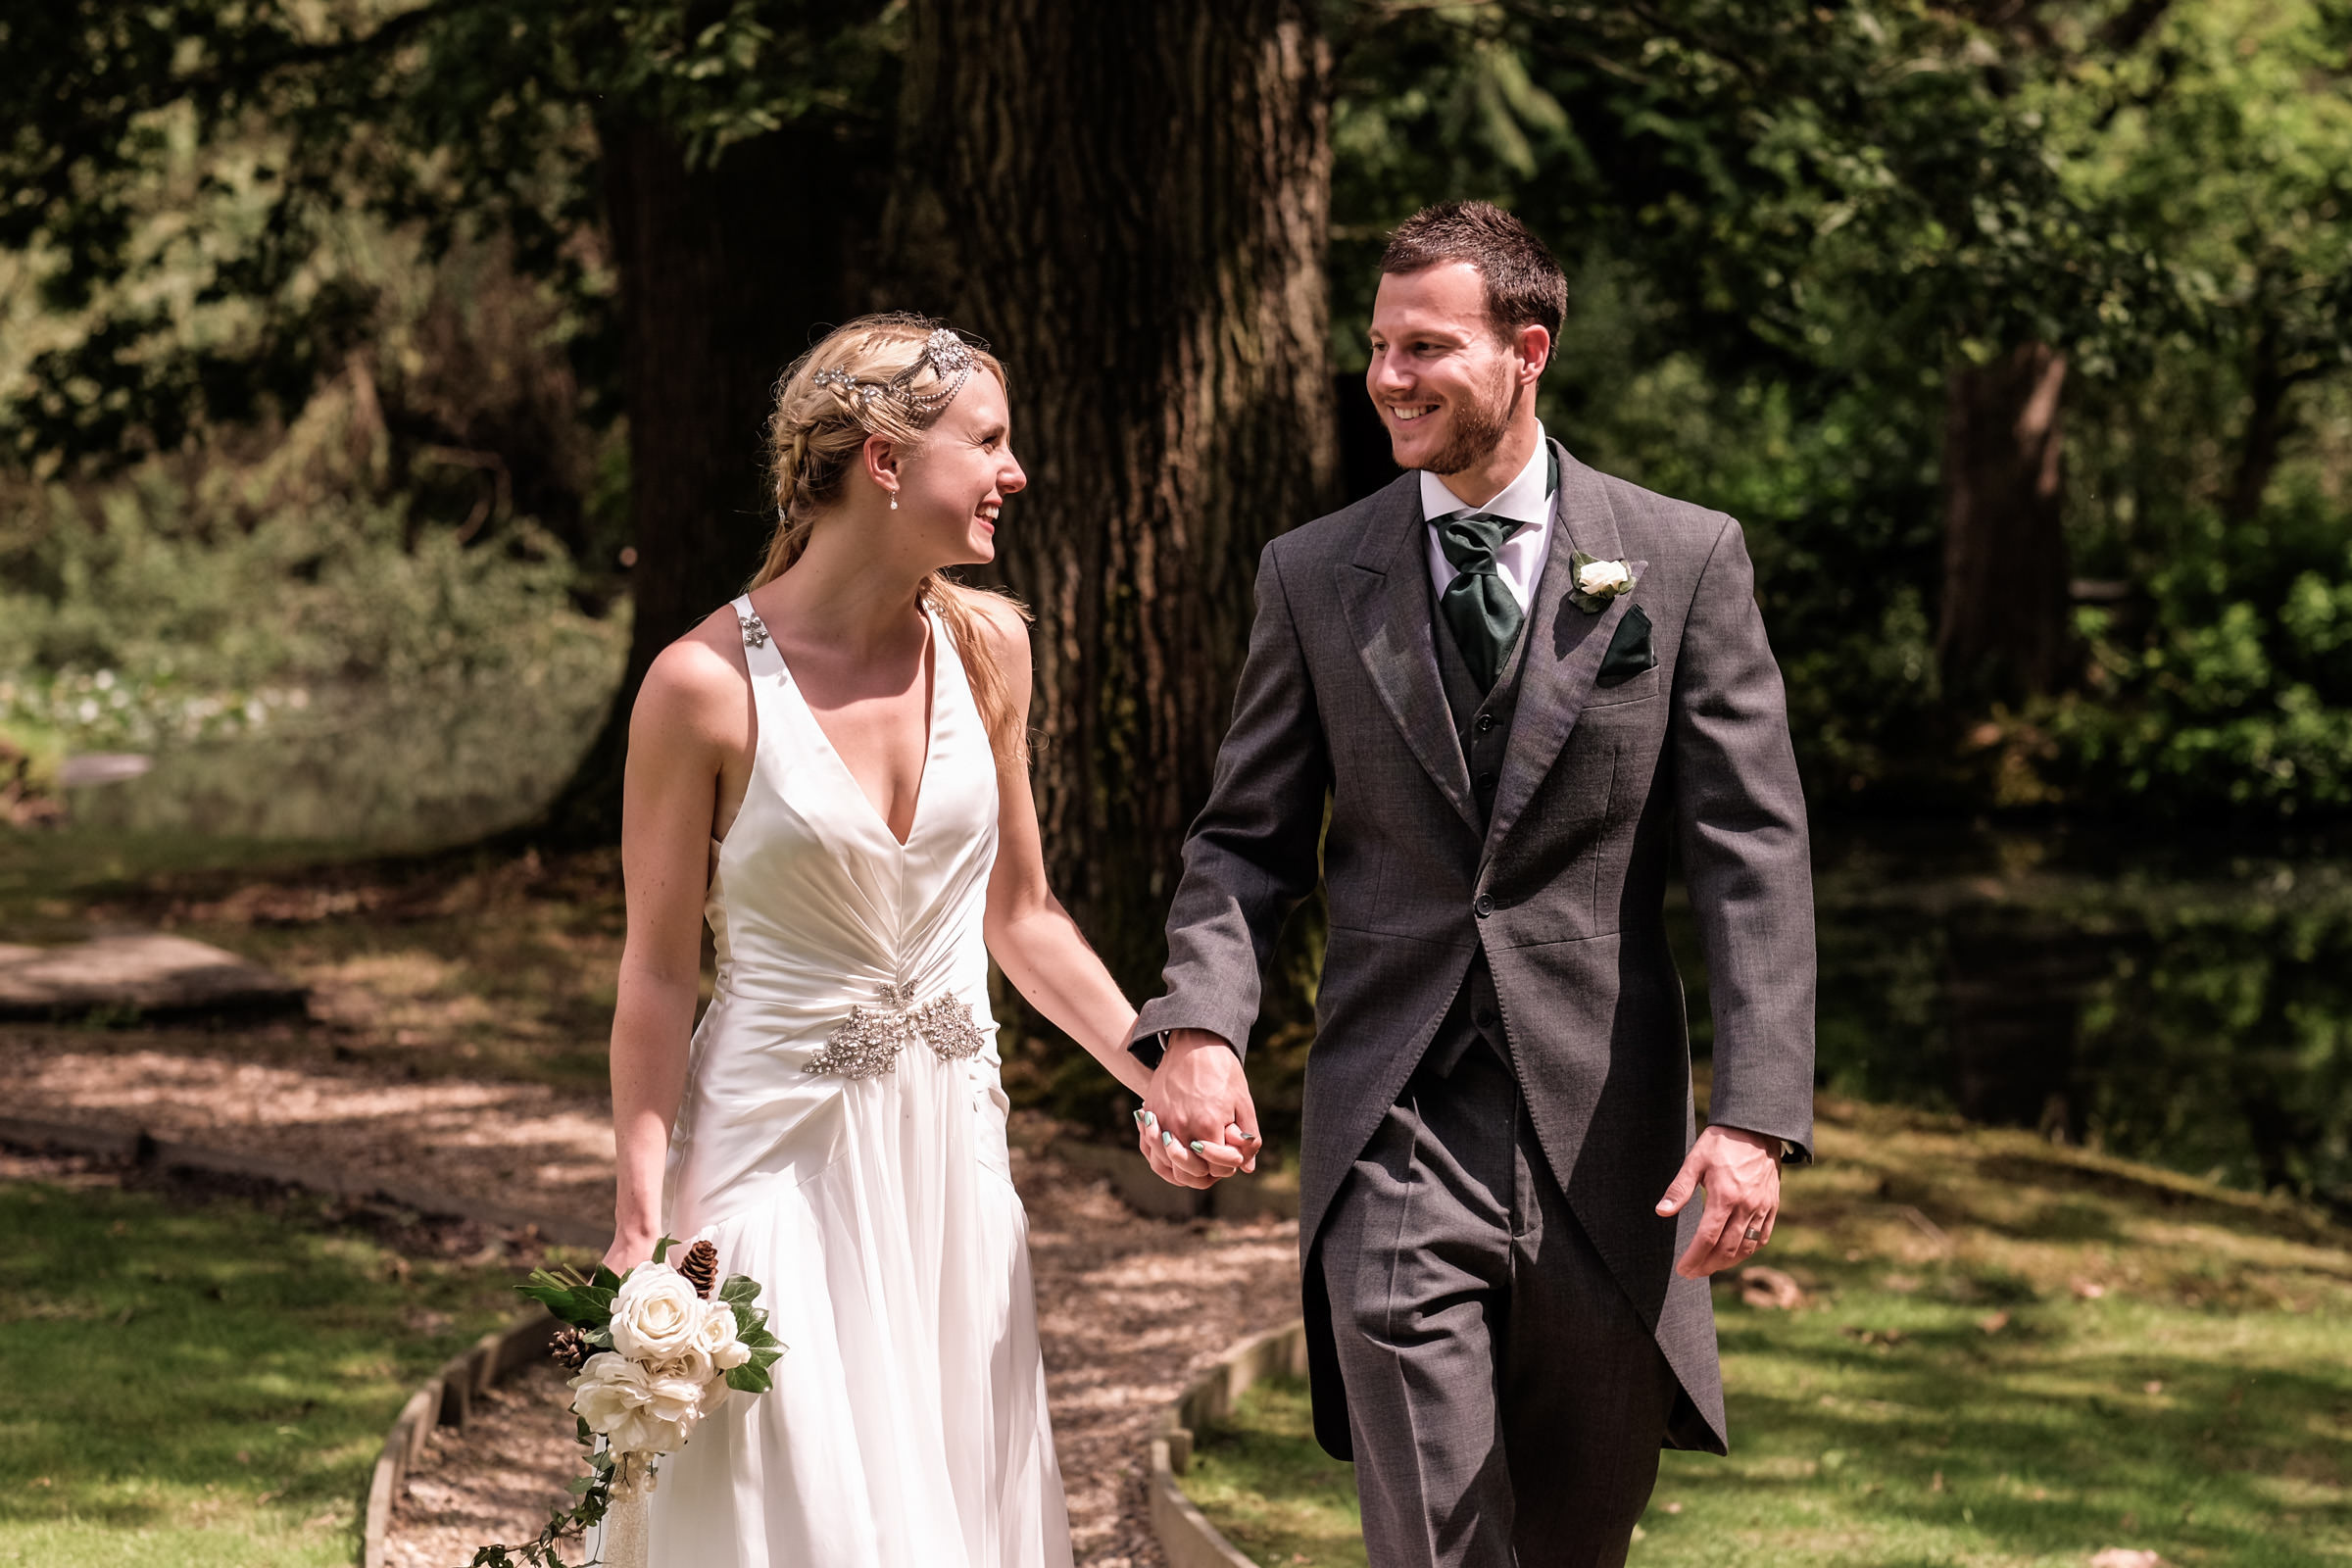 Wedding+at+Lytha+Hill+in+Haslemere+013.jpg